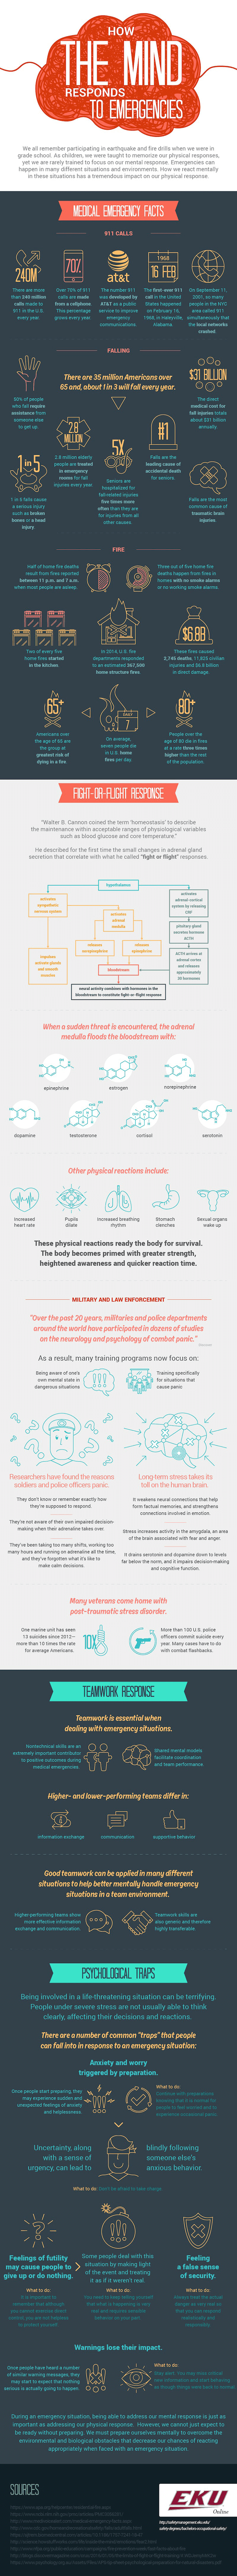 Infographic on How the Mind Responds to Emergencies